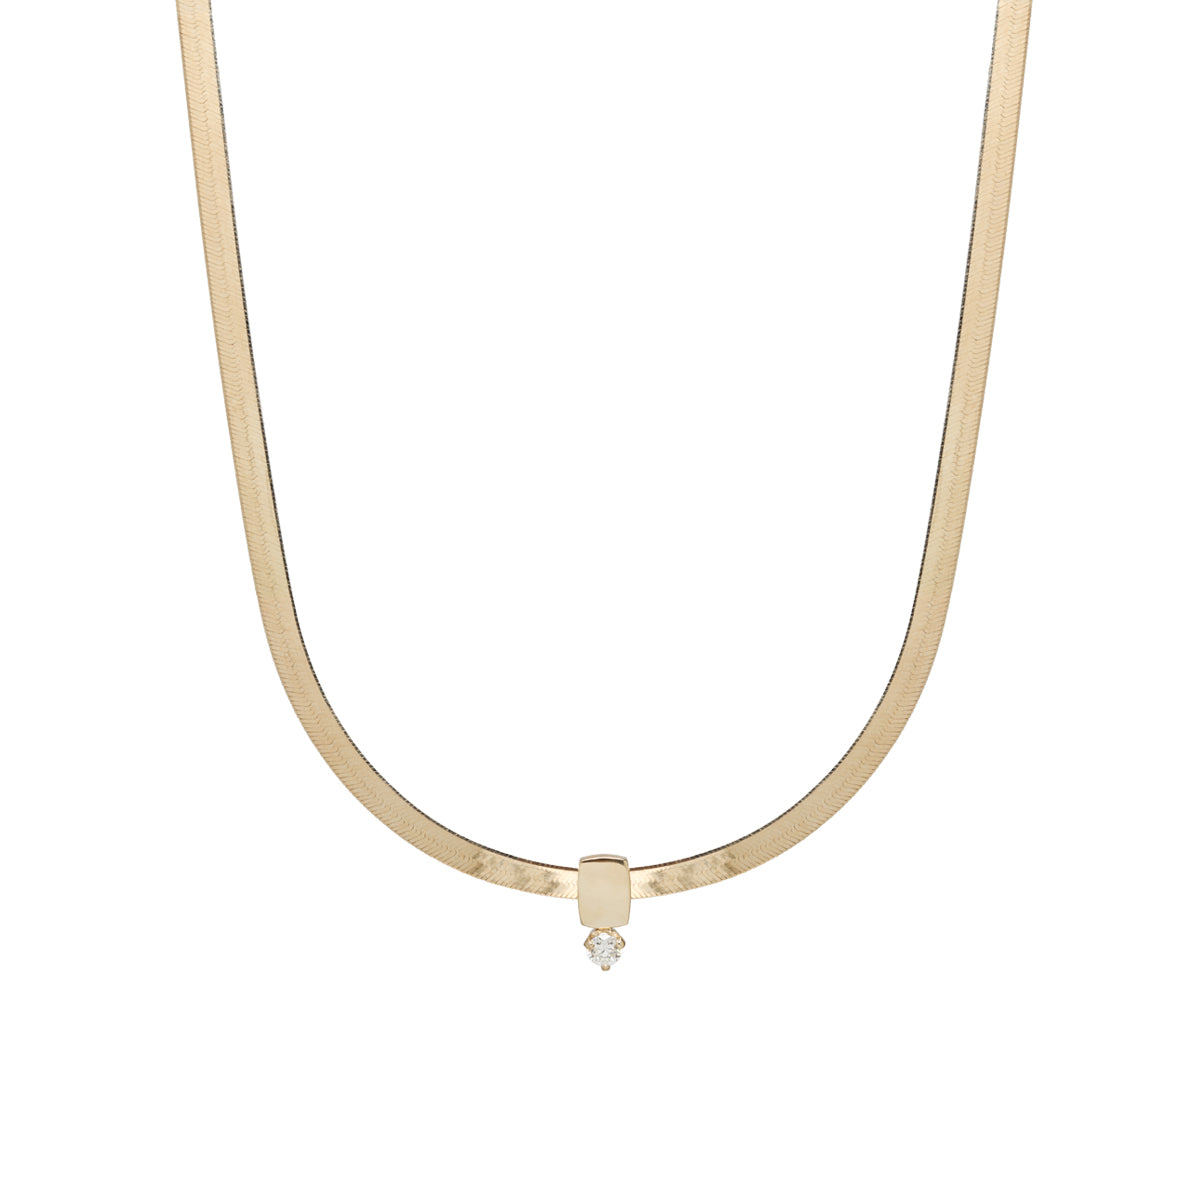 14k gold herringbone chain necklace with prong set diamond slide